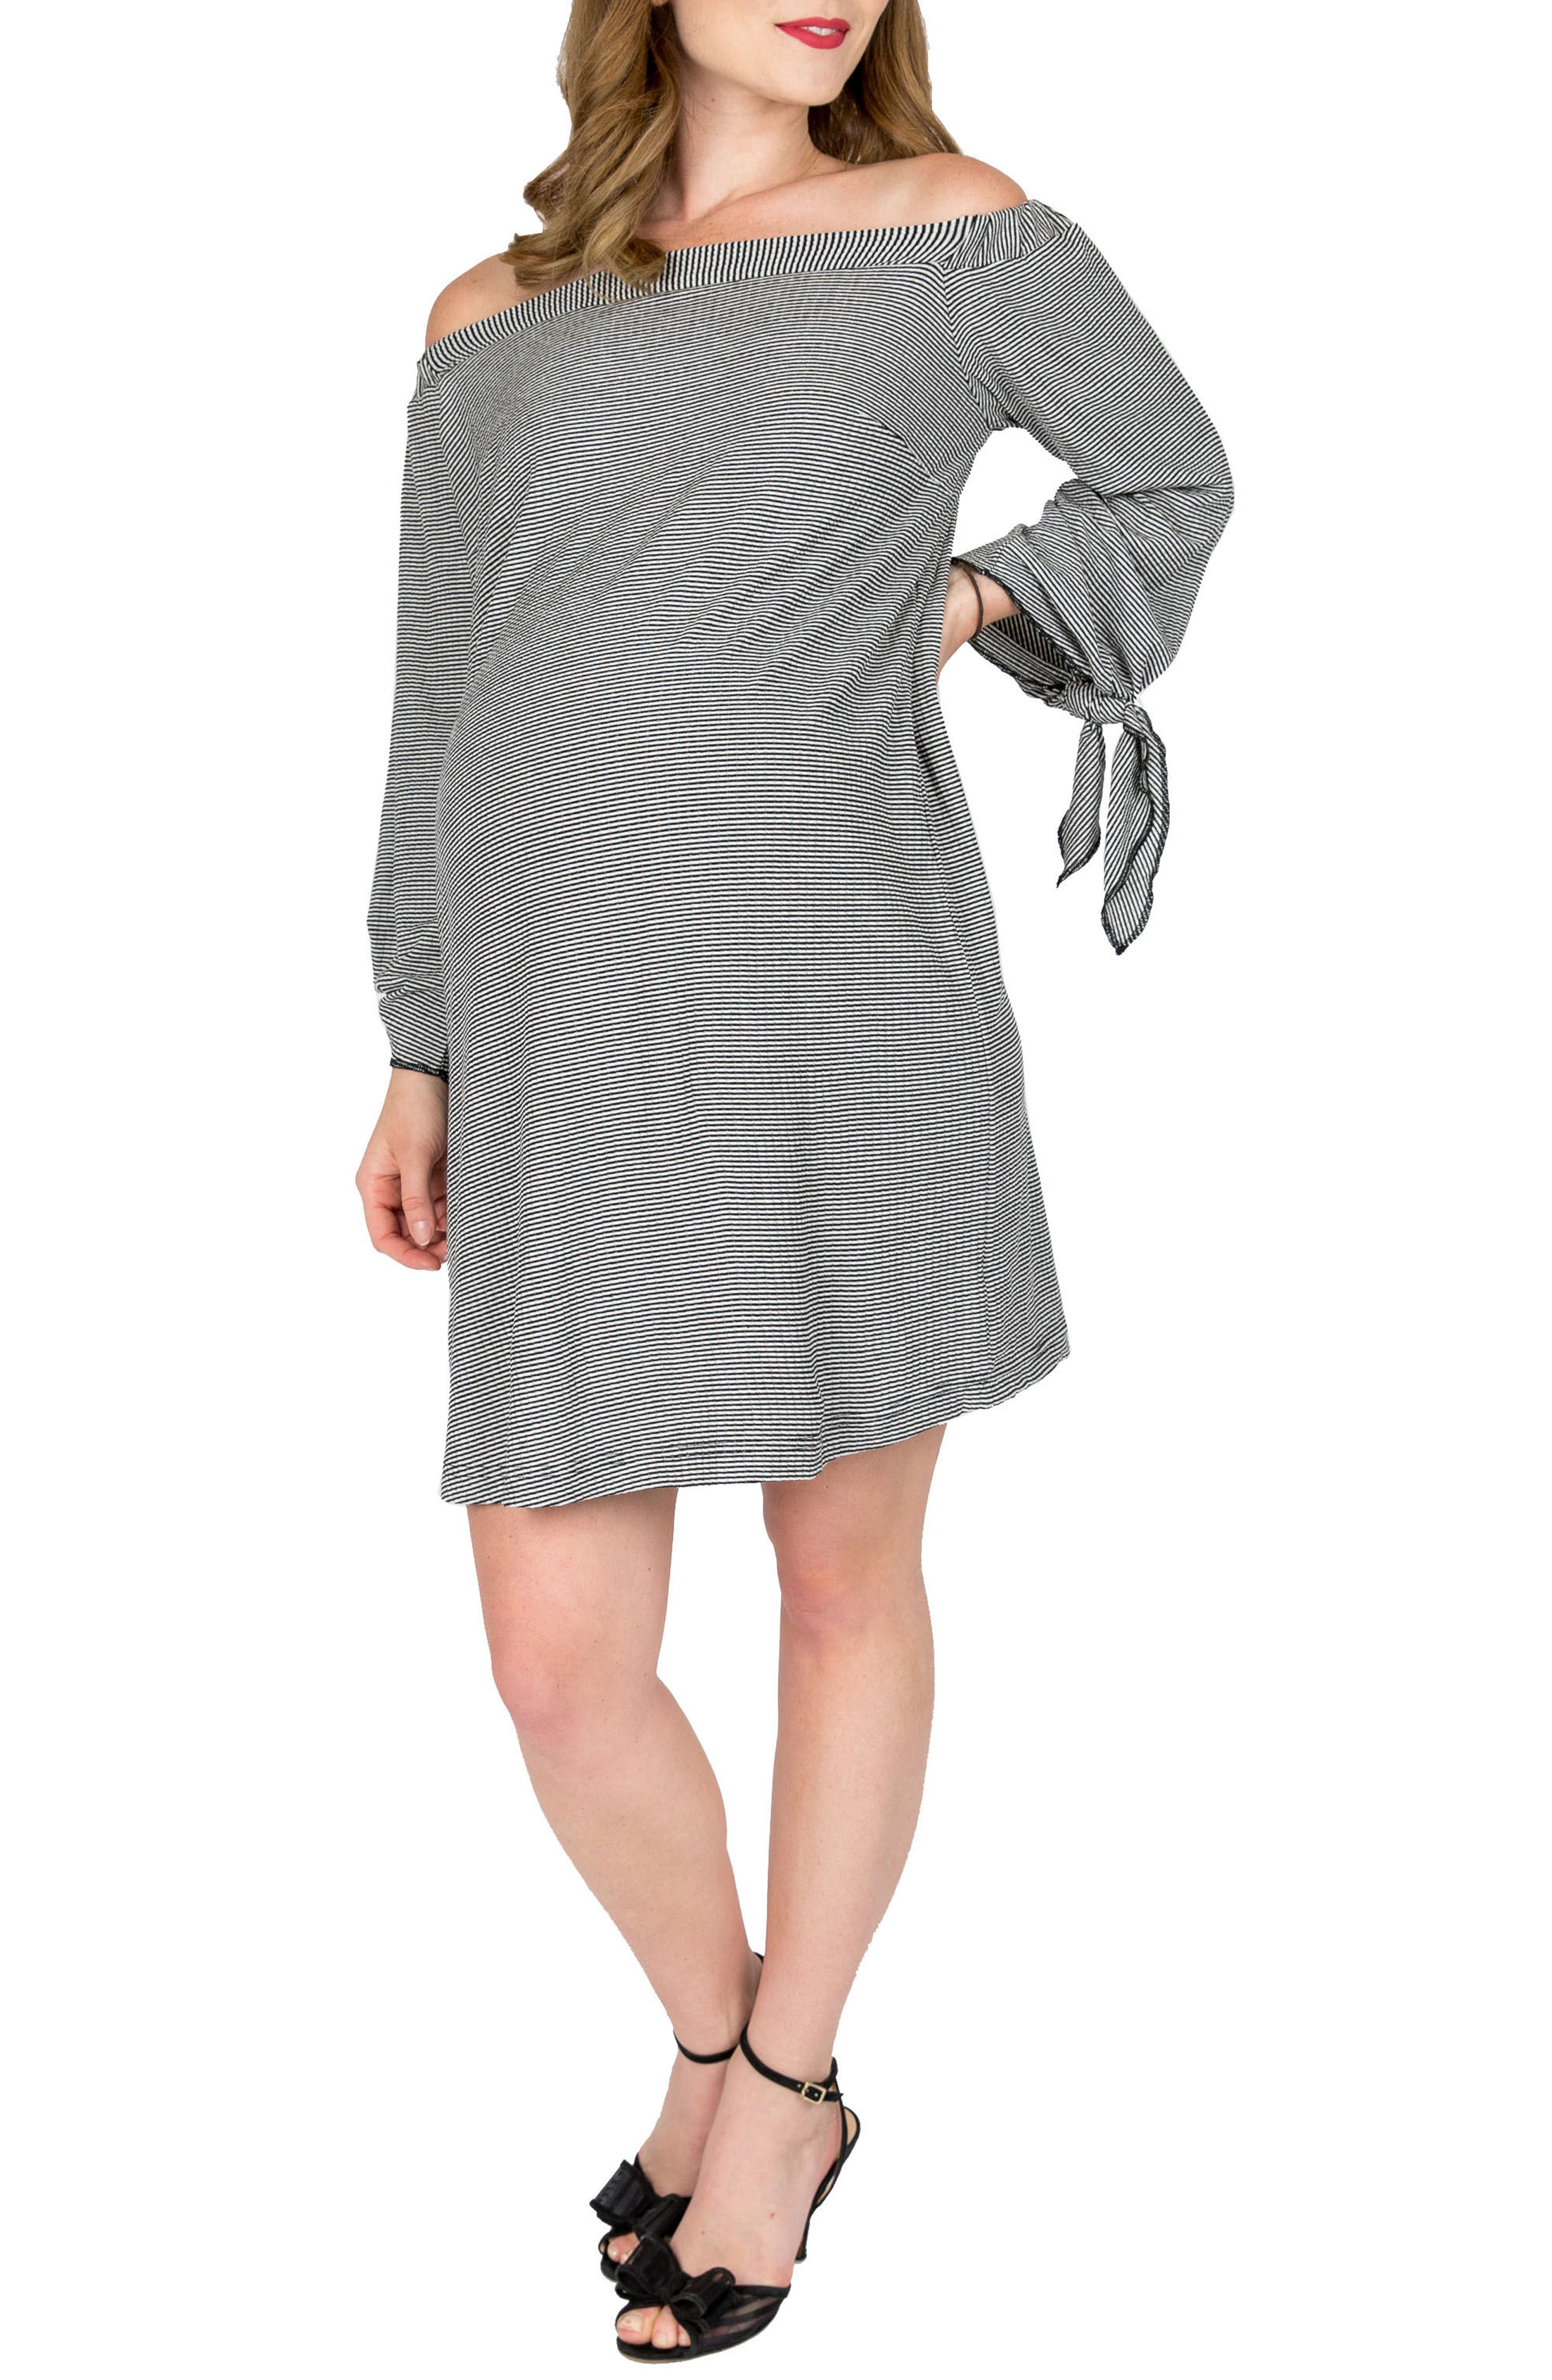 Main Image - Nom Maternity Octavia Off The Shoulder Maternity Dress